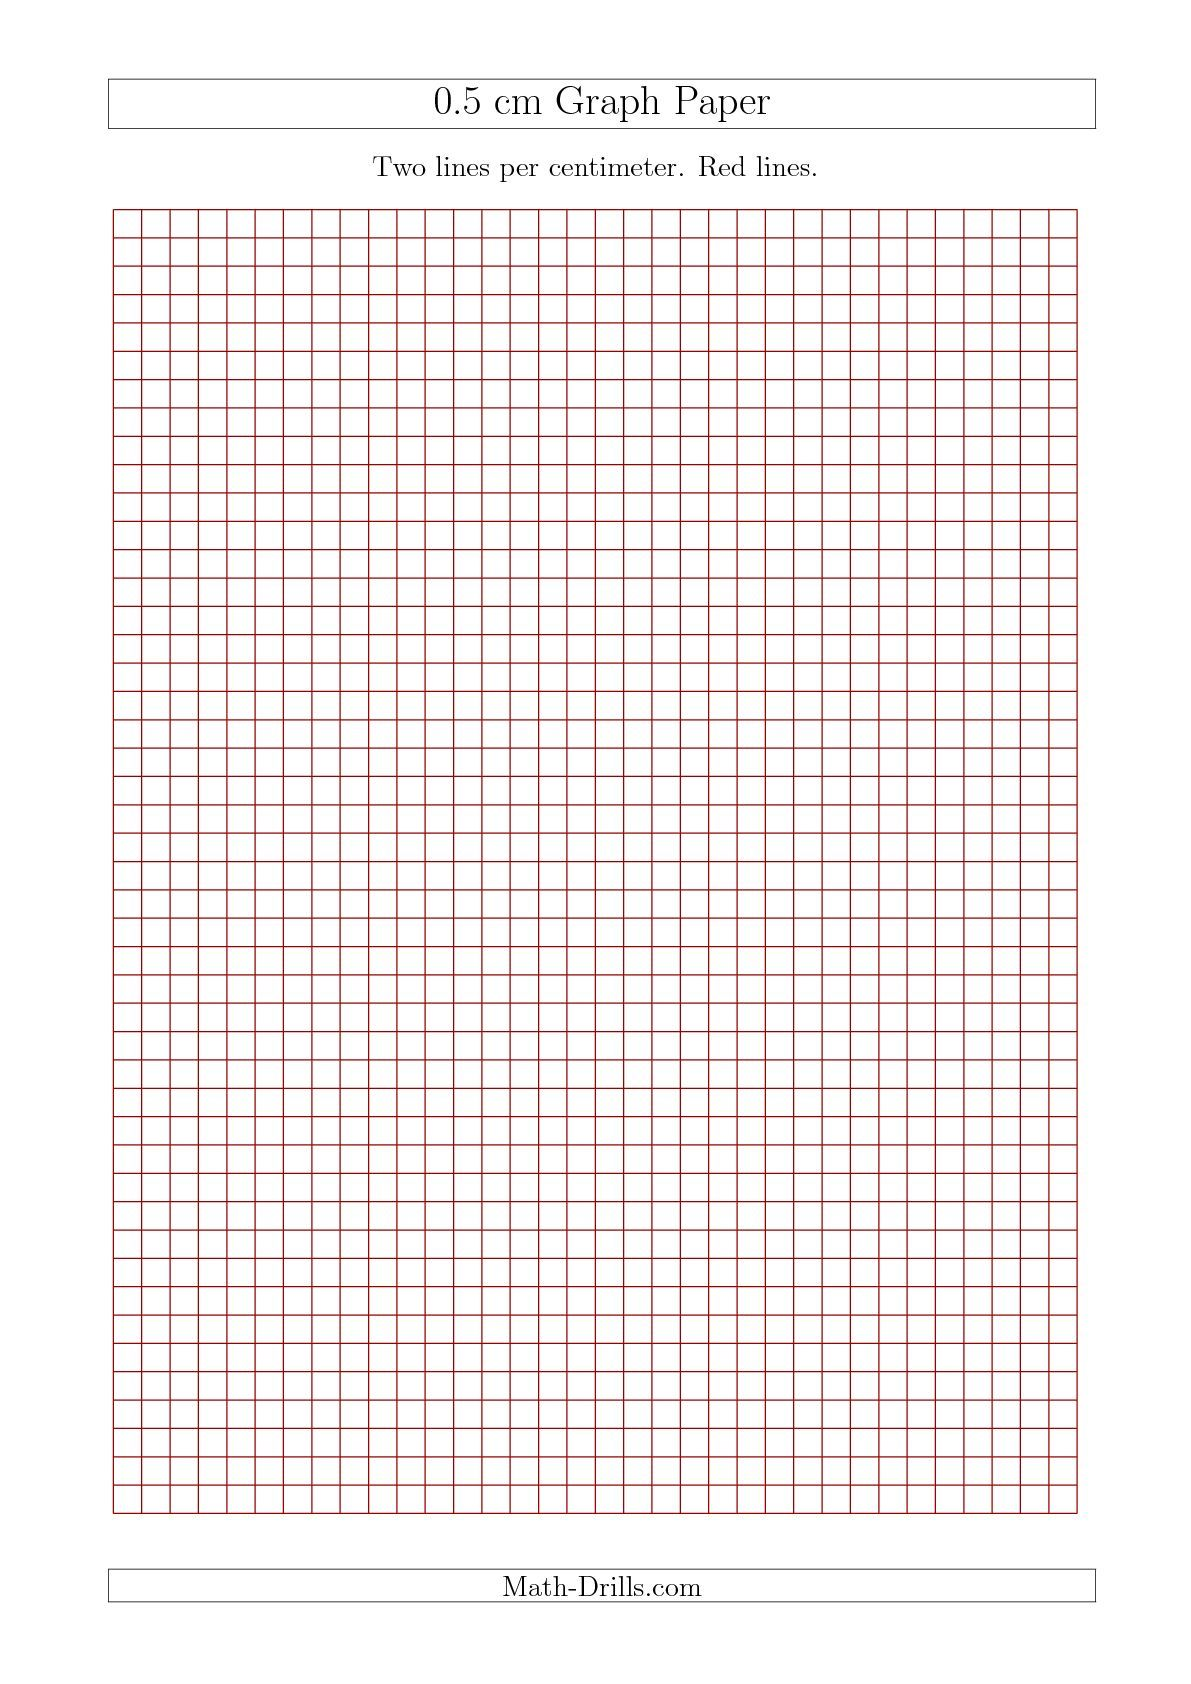 New 09 17 0 5 Cm Graph Paper With Red Lines A4 Size Math Worksheet Freemath